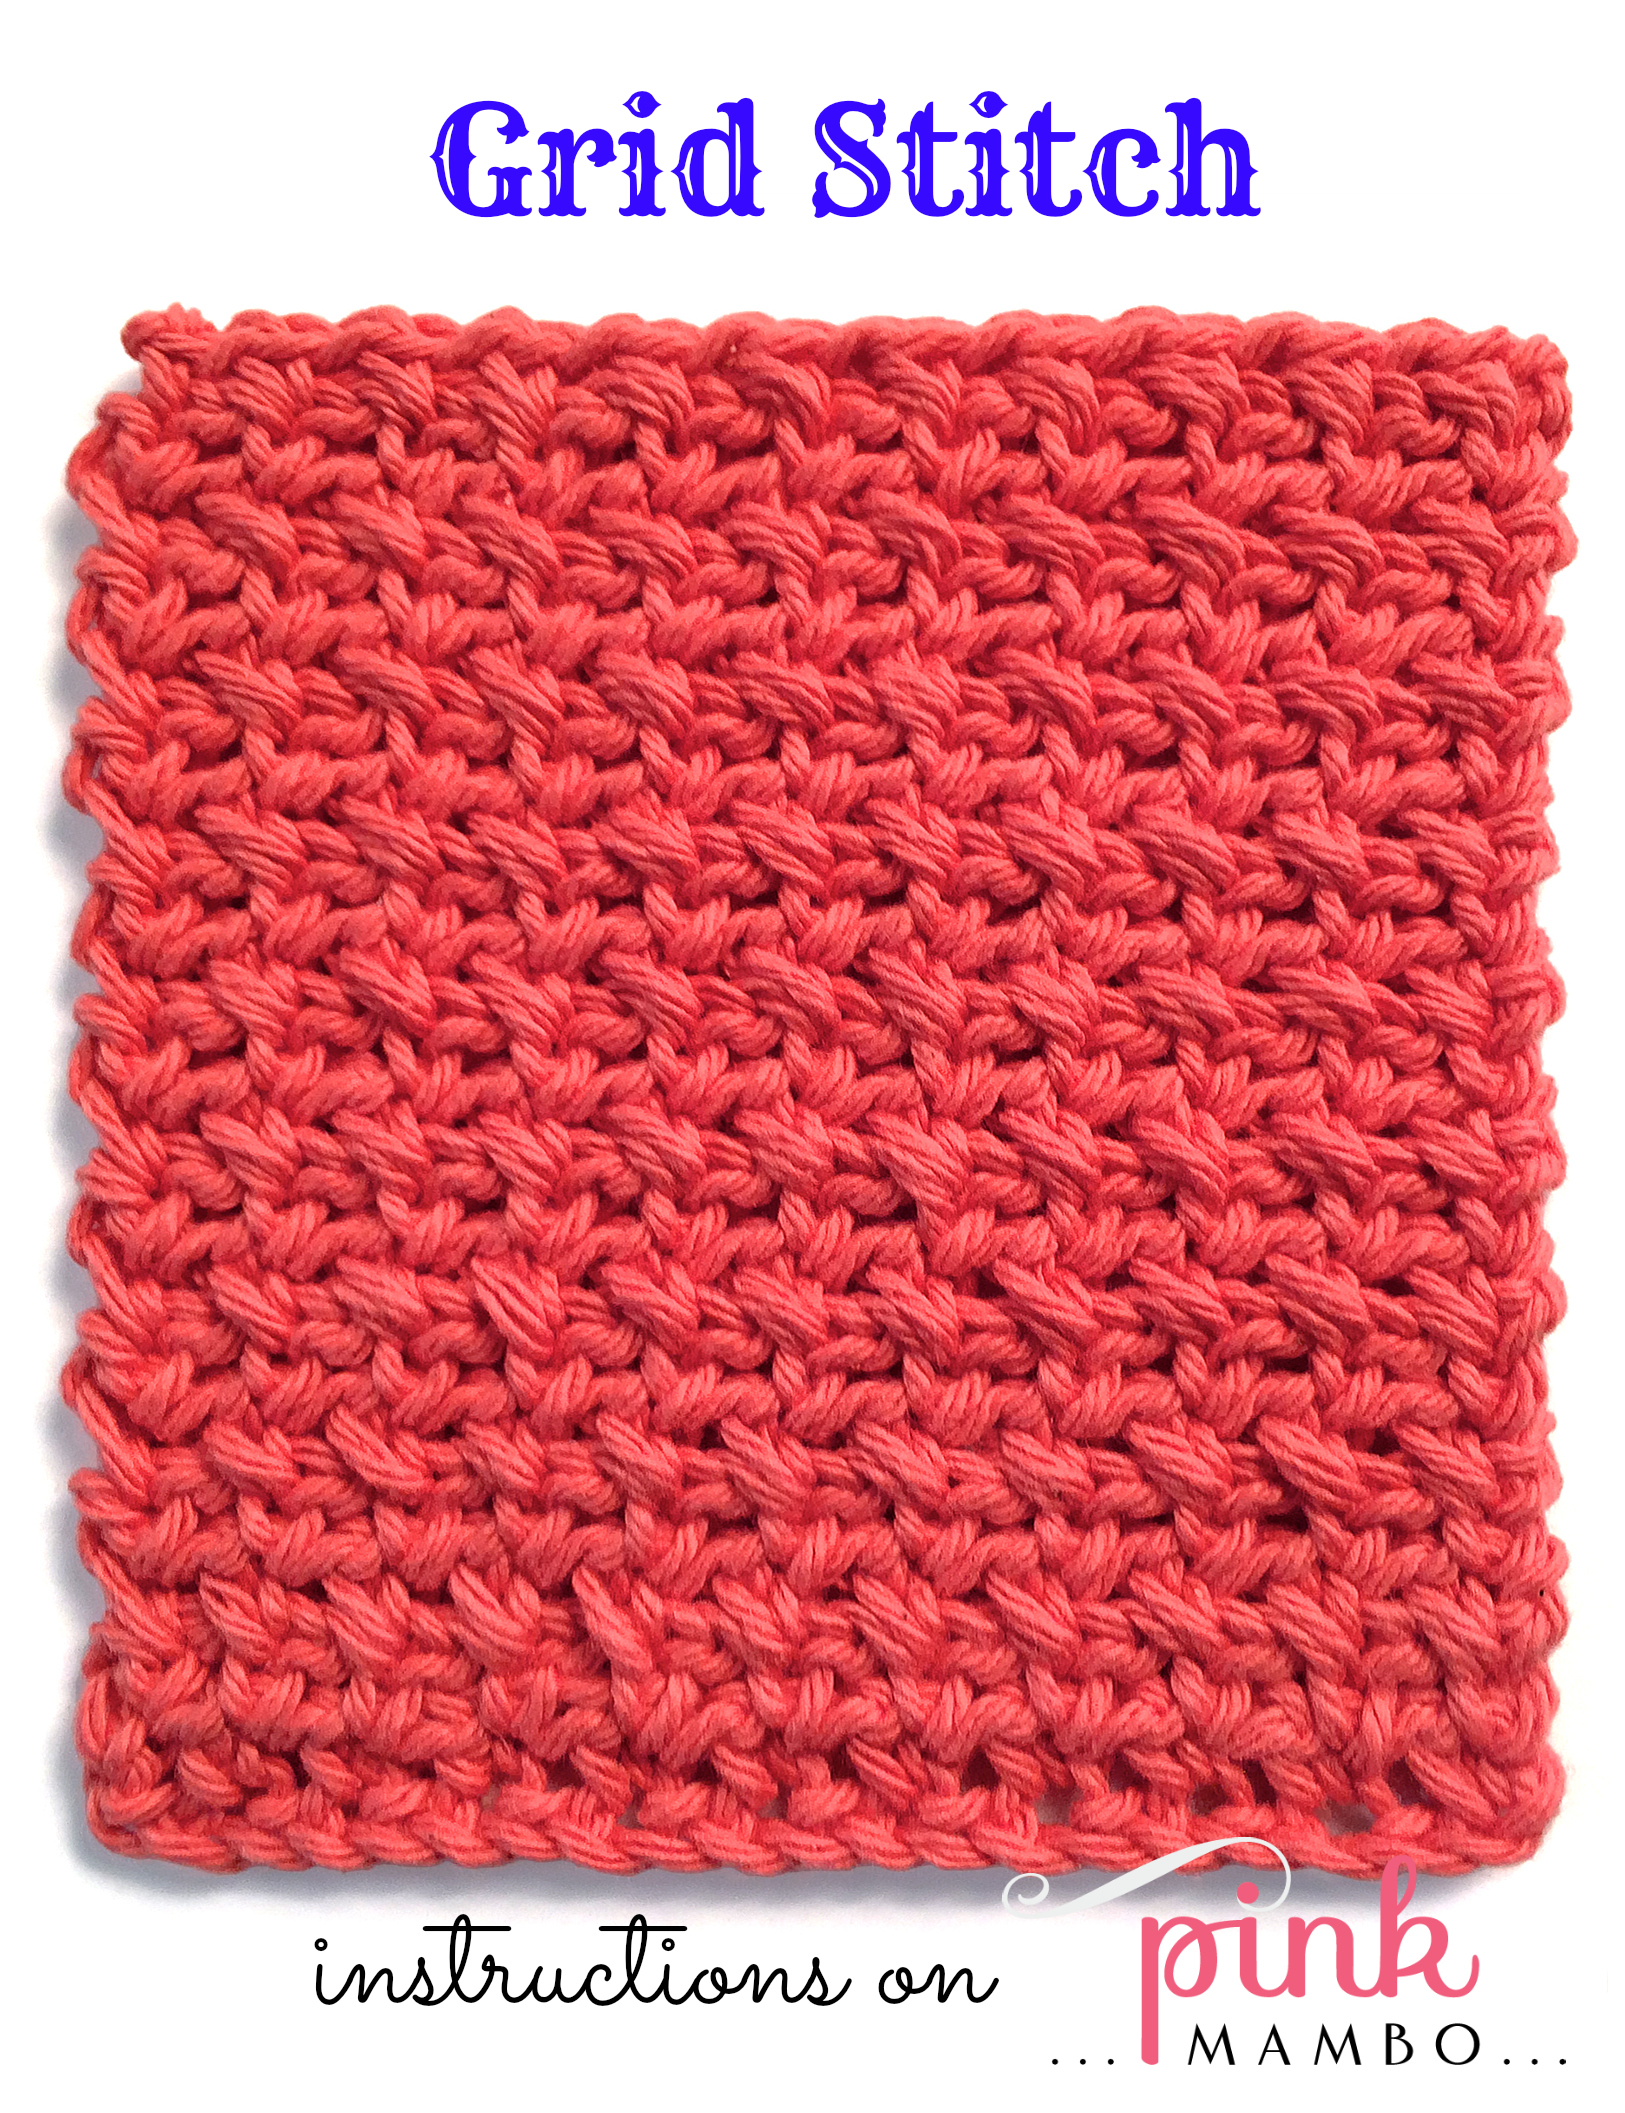 Crocheting Stitches : Gallery images and information: Different Crochet Stitches Patterns